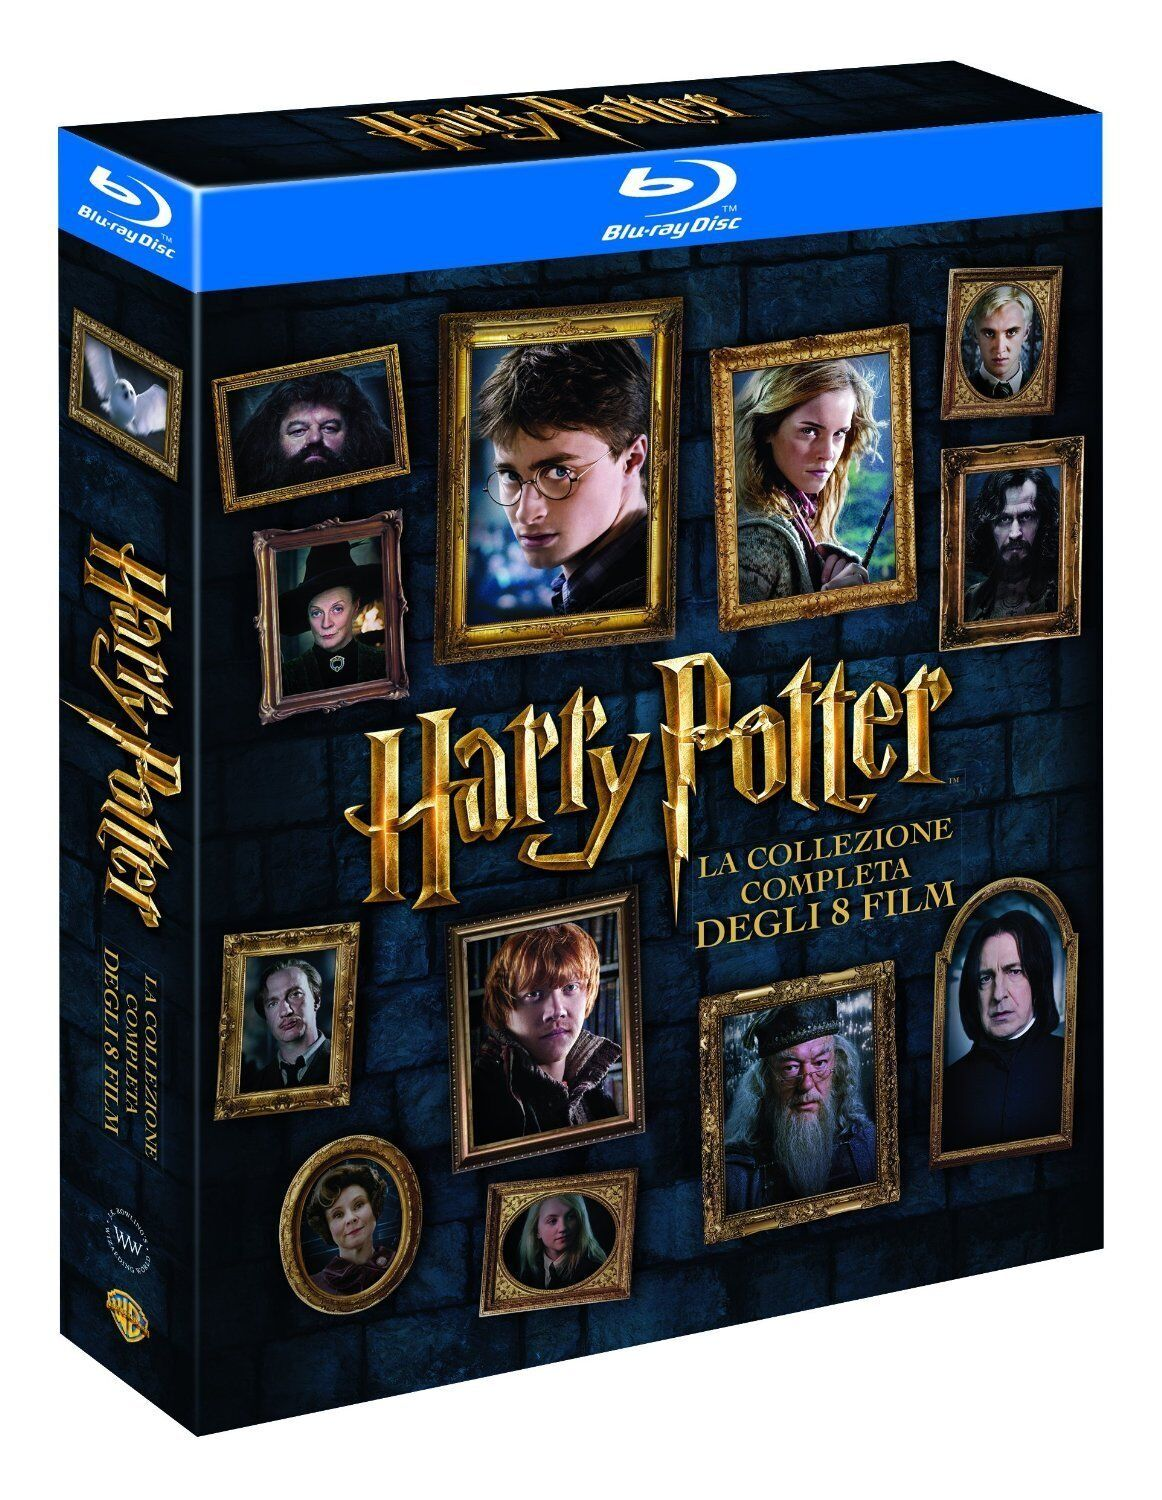 Harry Potter BOX Komplettbox 1-7.2 Teil 1+2+3+4+5+6+7.1+7.2 NEU OVP [Blu-ray]